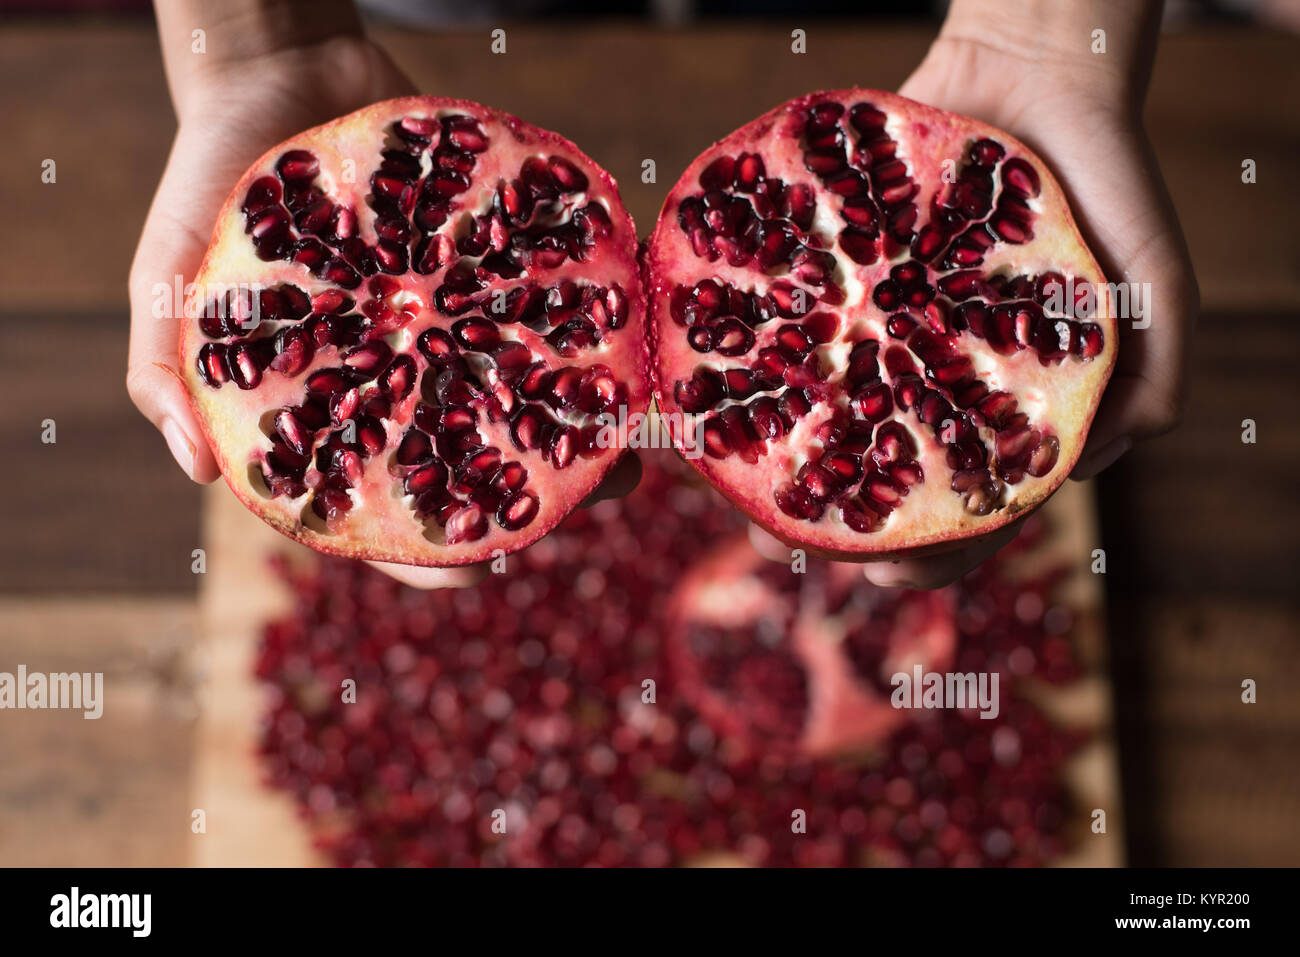 Hand Showing A Cut Pomegranate Fruit On Pomegranate Seeds